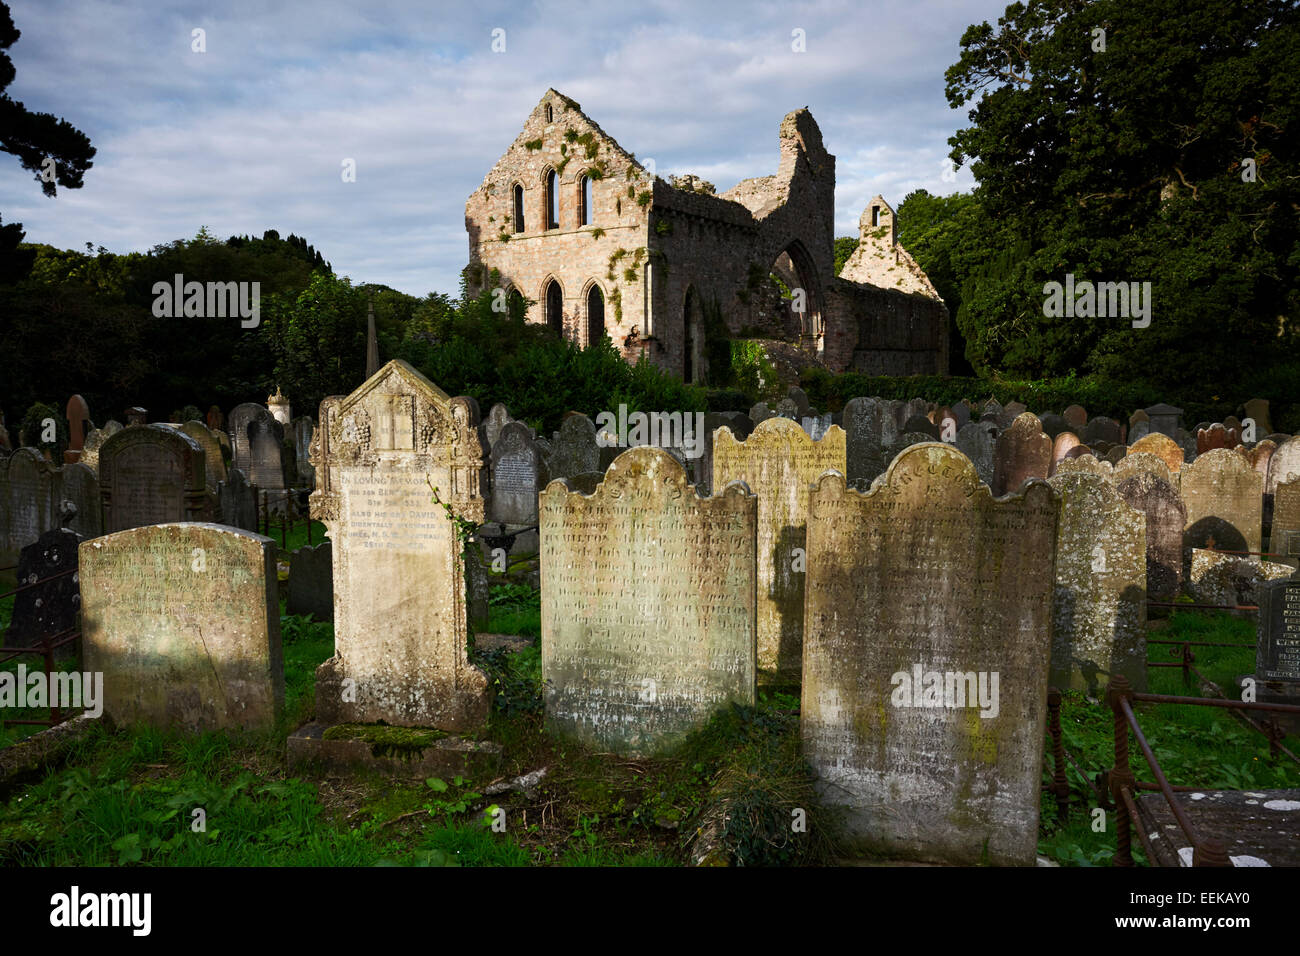 greyabbey cistercian abbey and graveyard in county down northern ireland - Stock Image